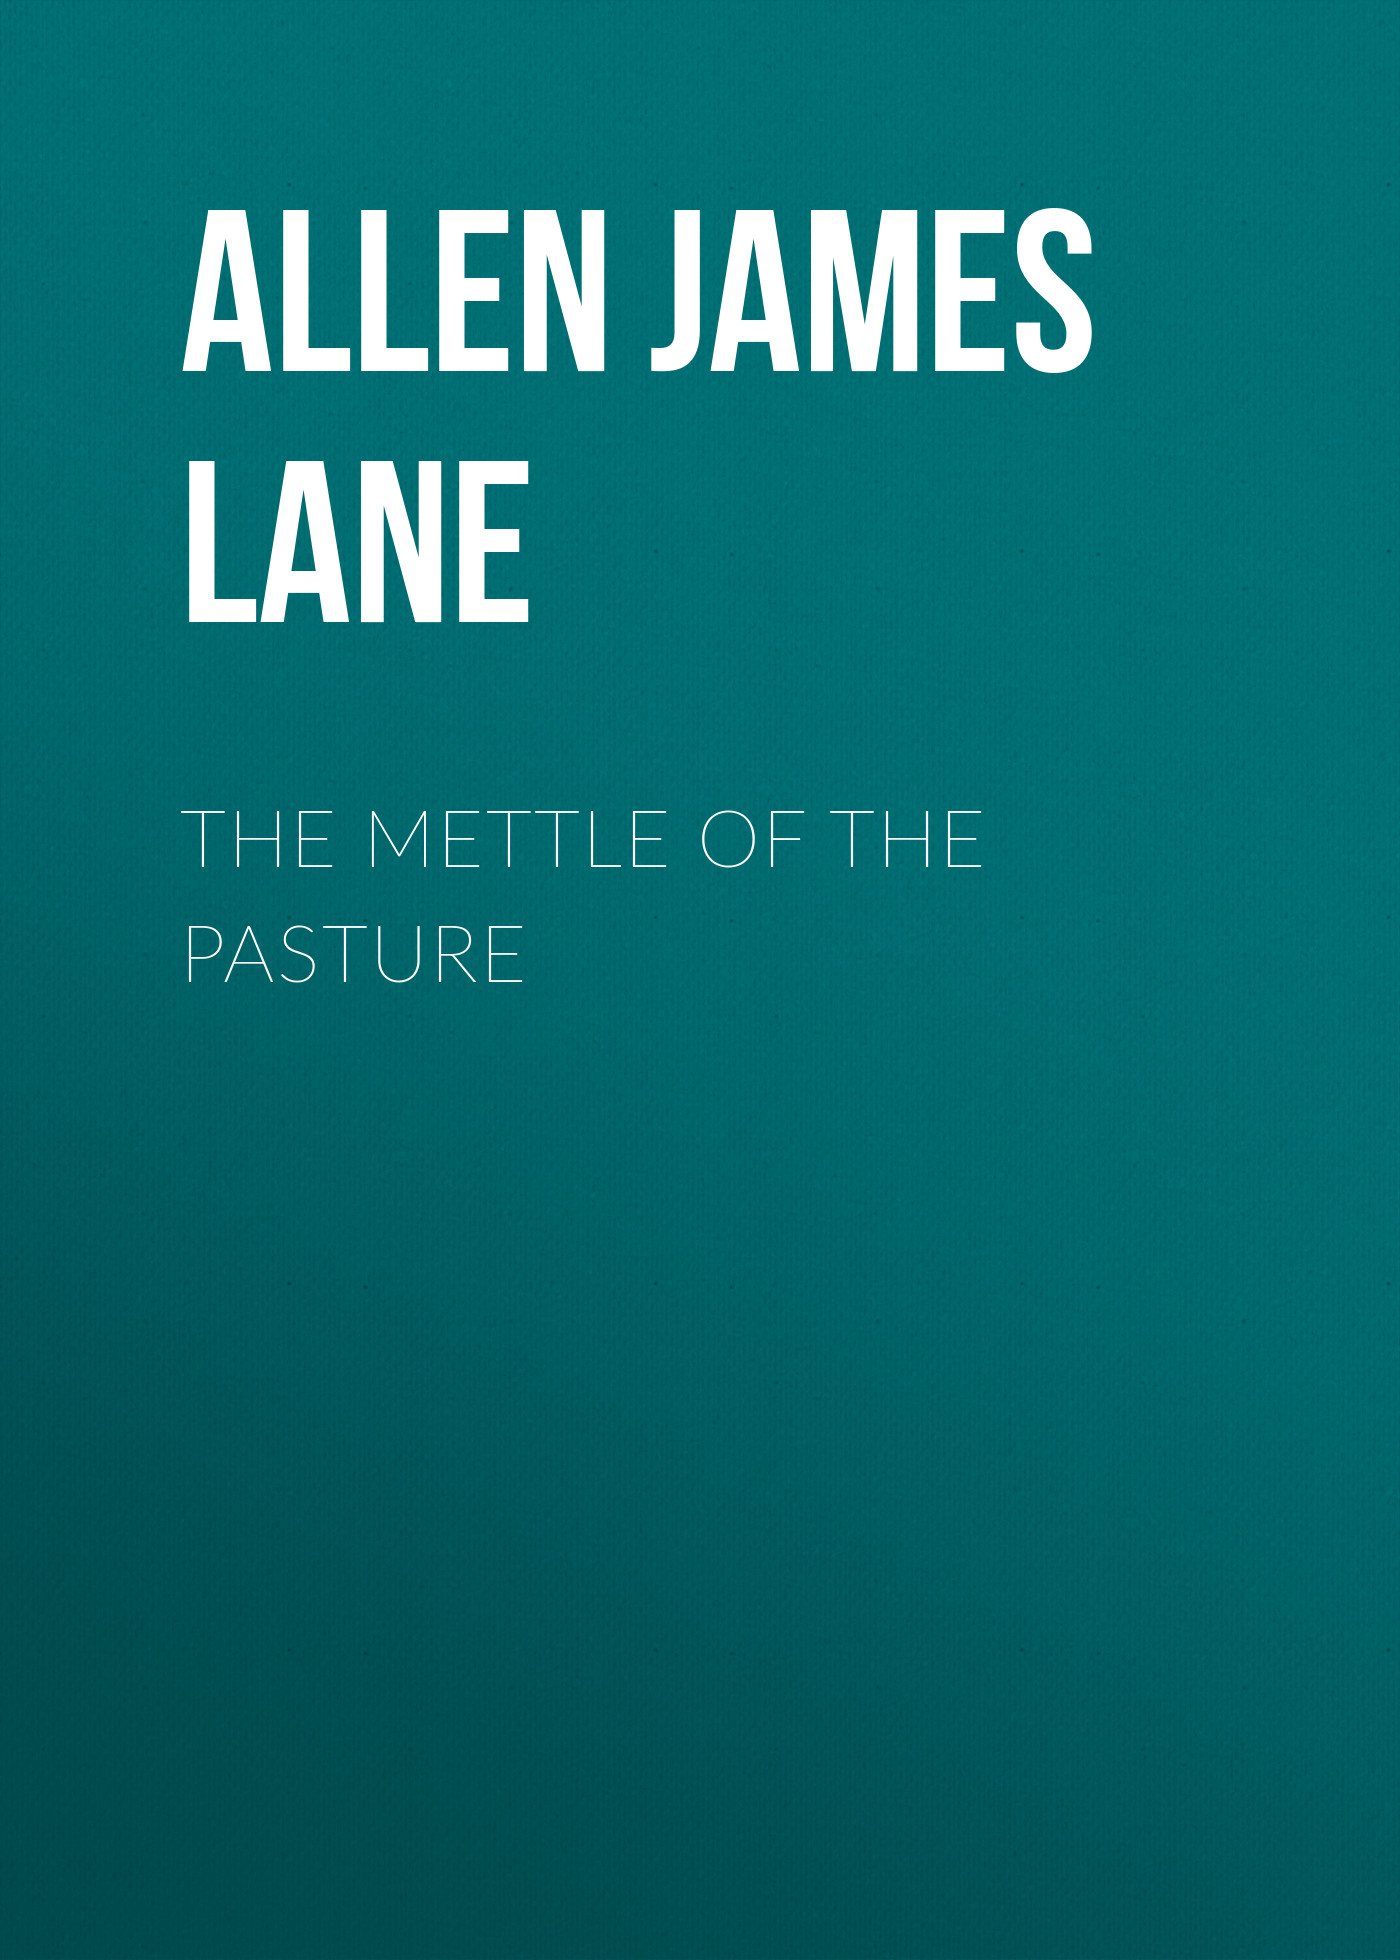 Allen James Lane The Mettle of the Pasture allen james lane the mettle of the pasture